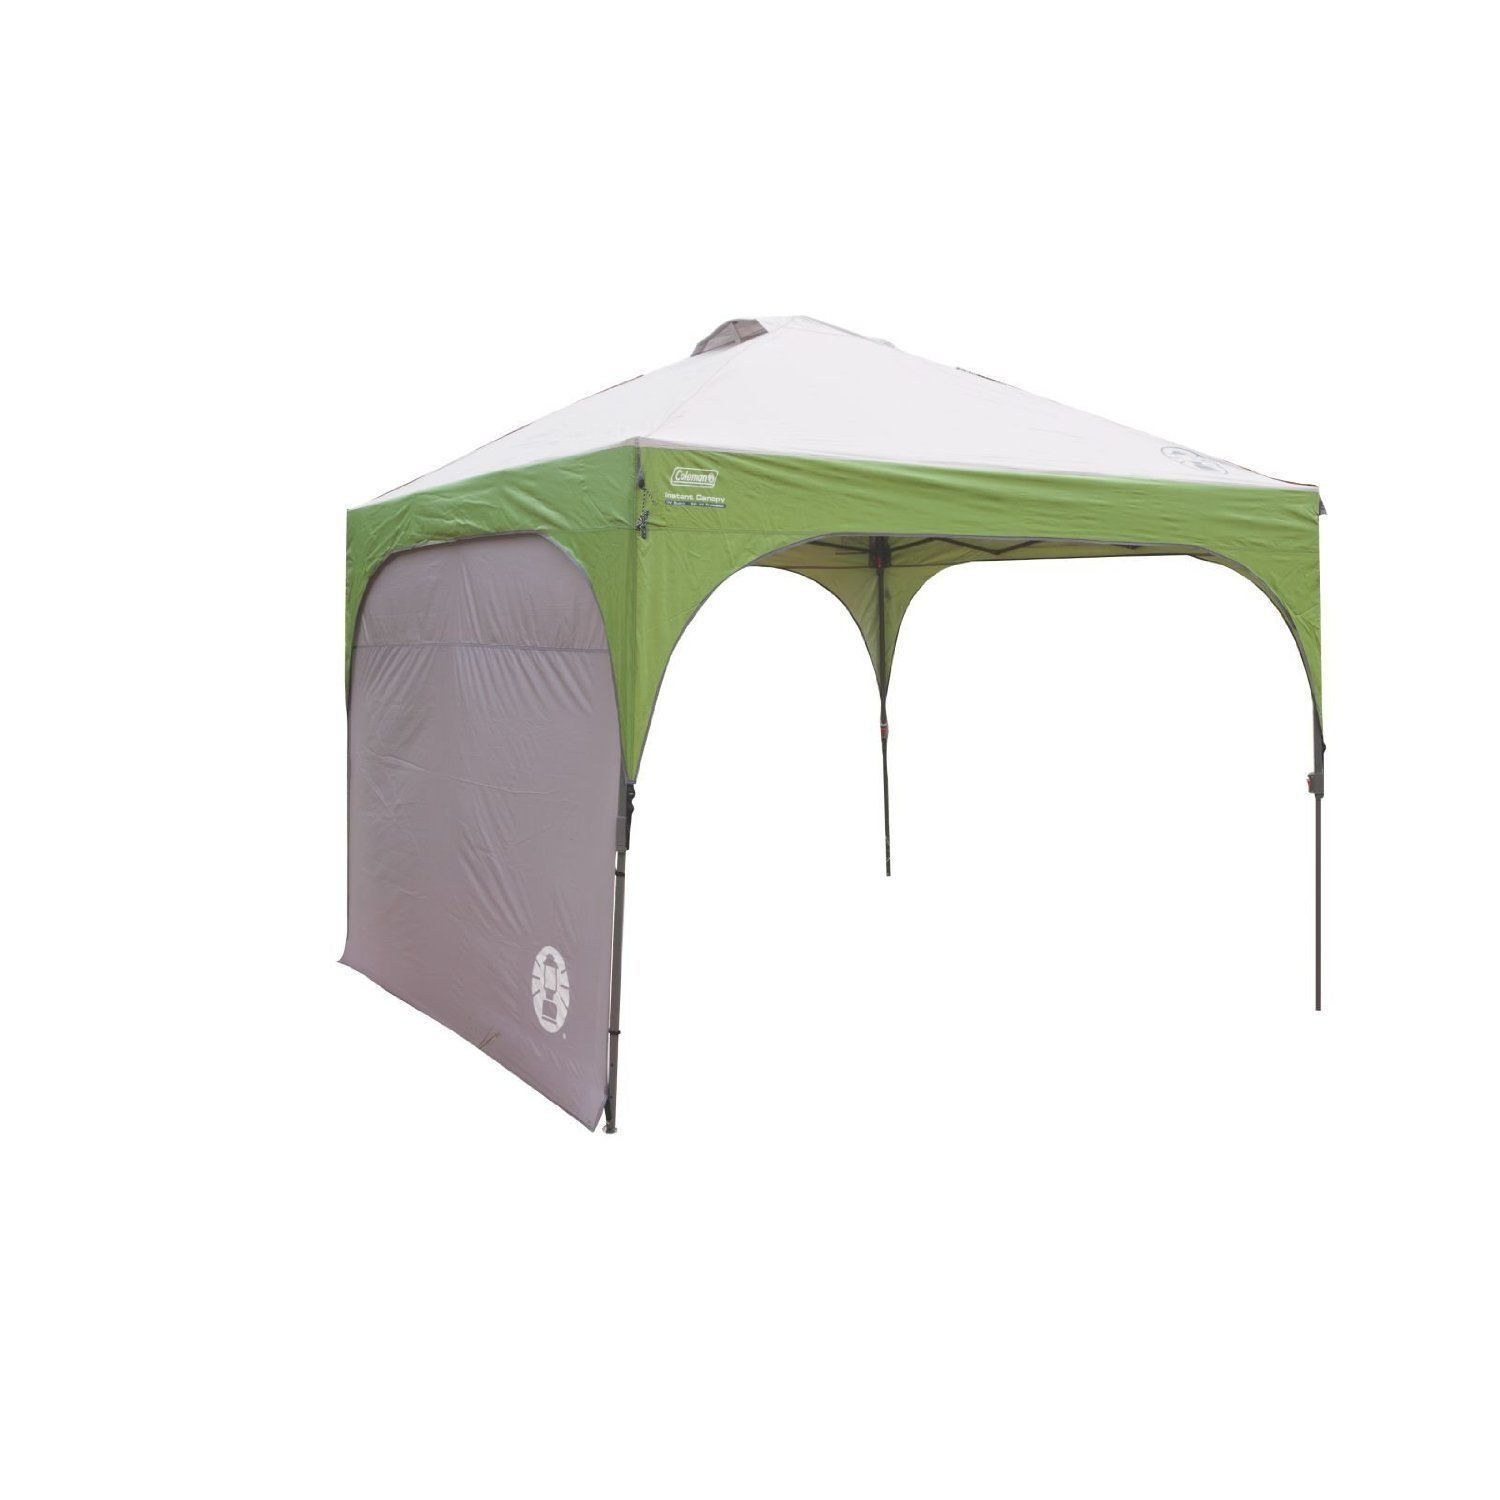 how much does it cost to build a 12x12 gazebo?